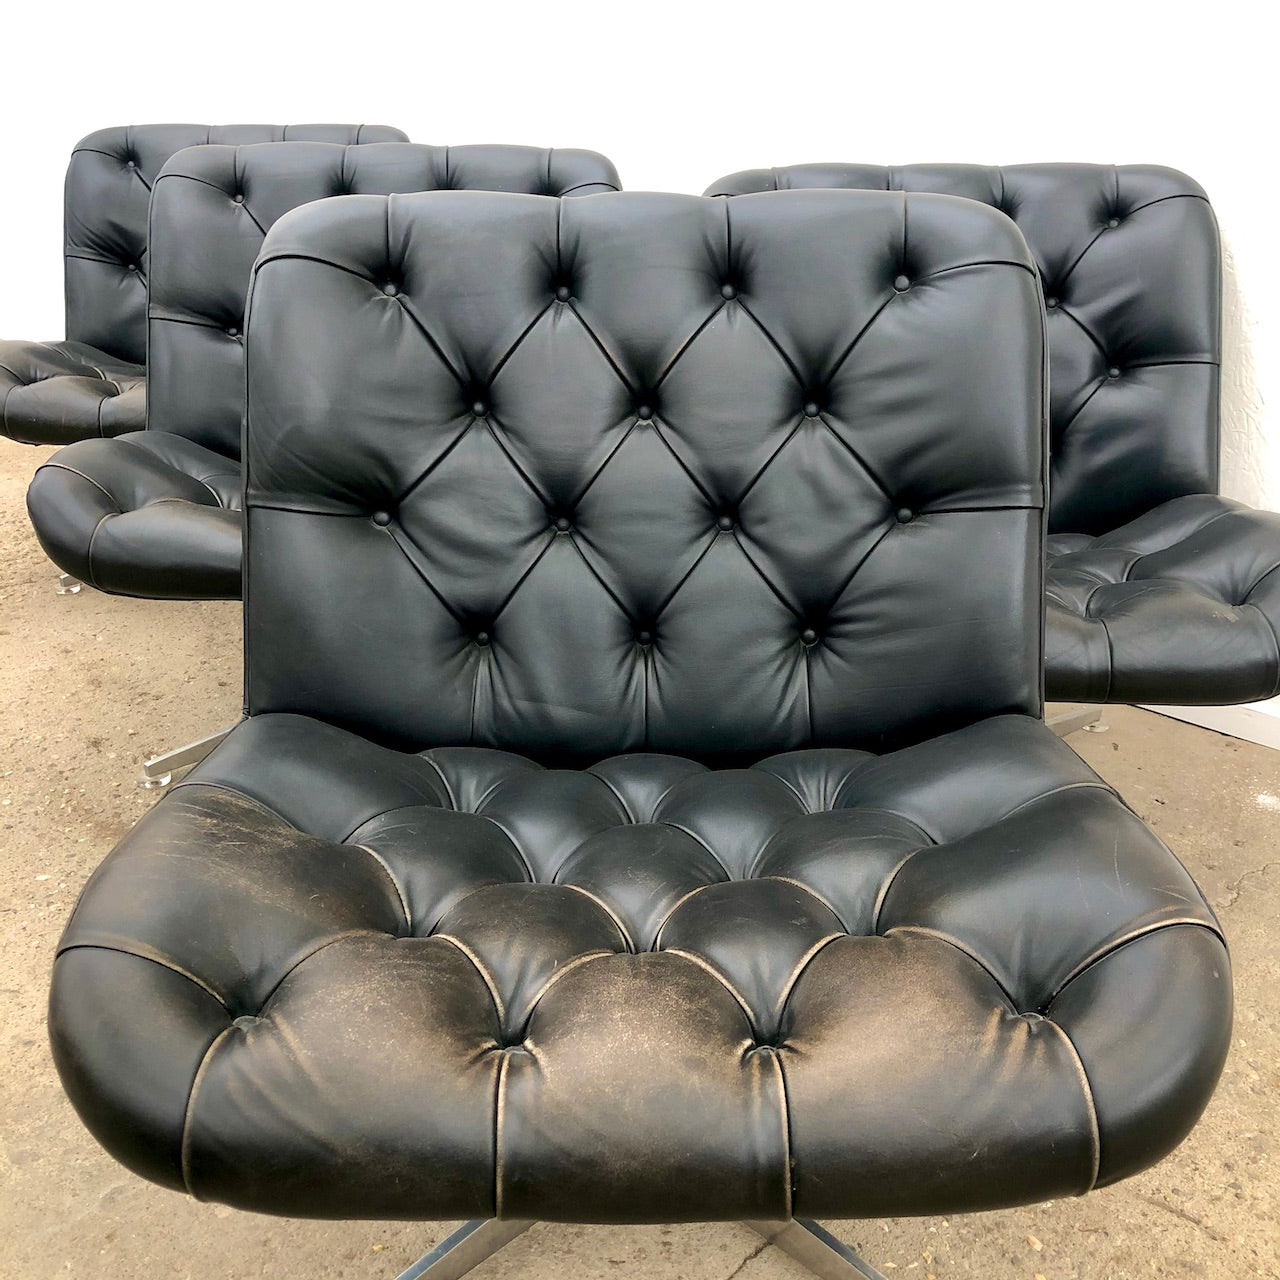 Set of 4 vintage black leather lounge chairs